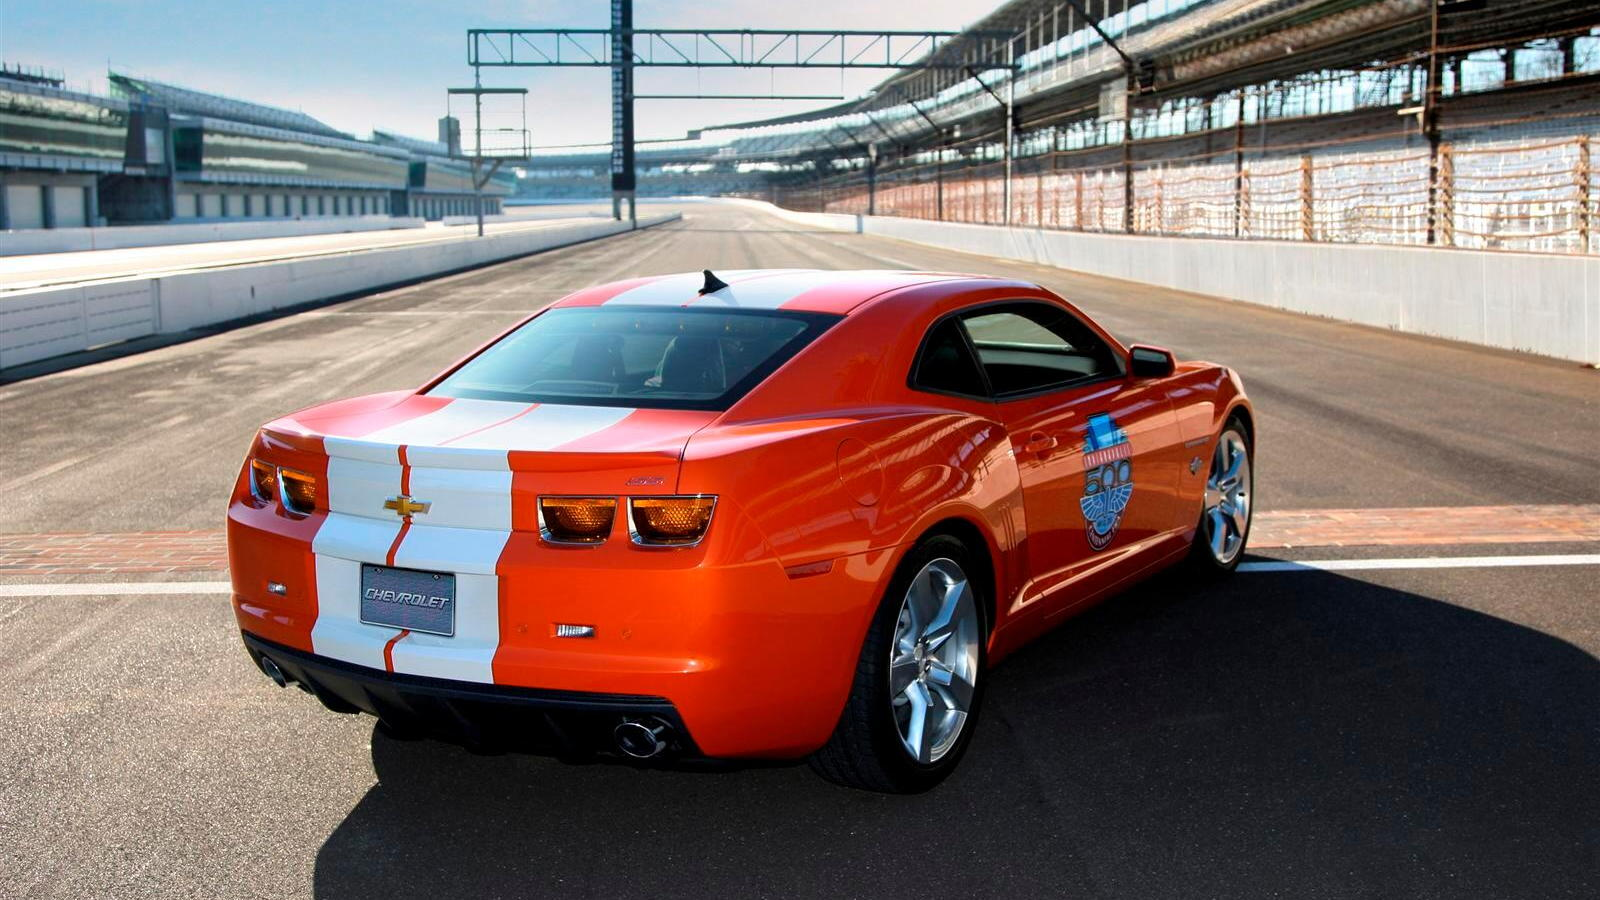 2010 Chevrolet Camaro SS Indianapolis 500 Pace Car